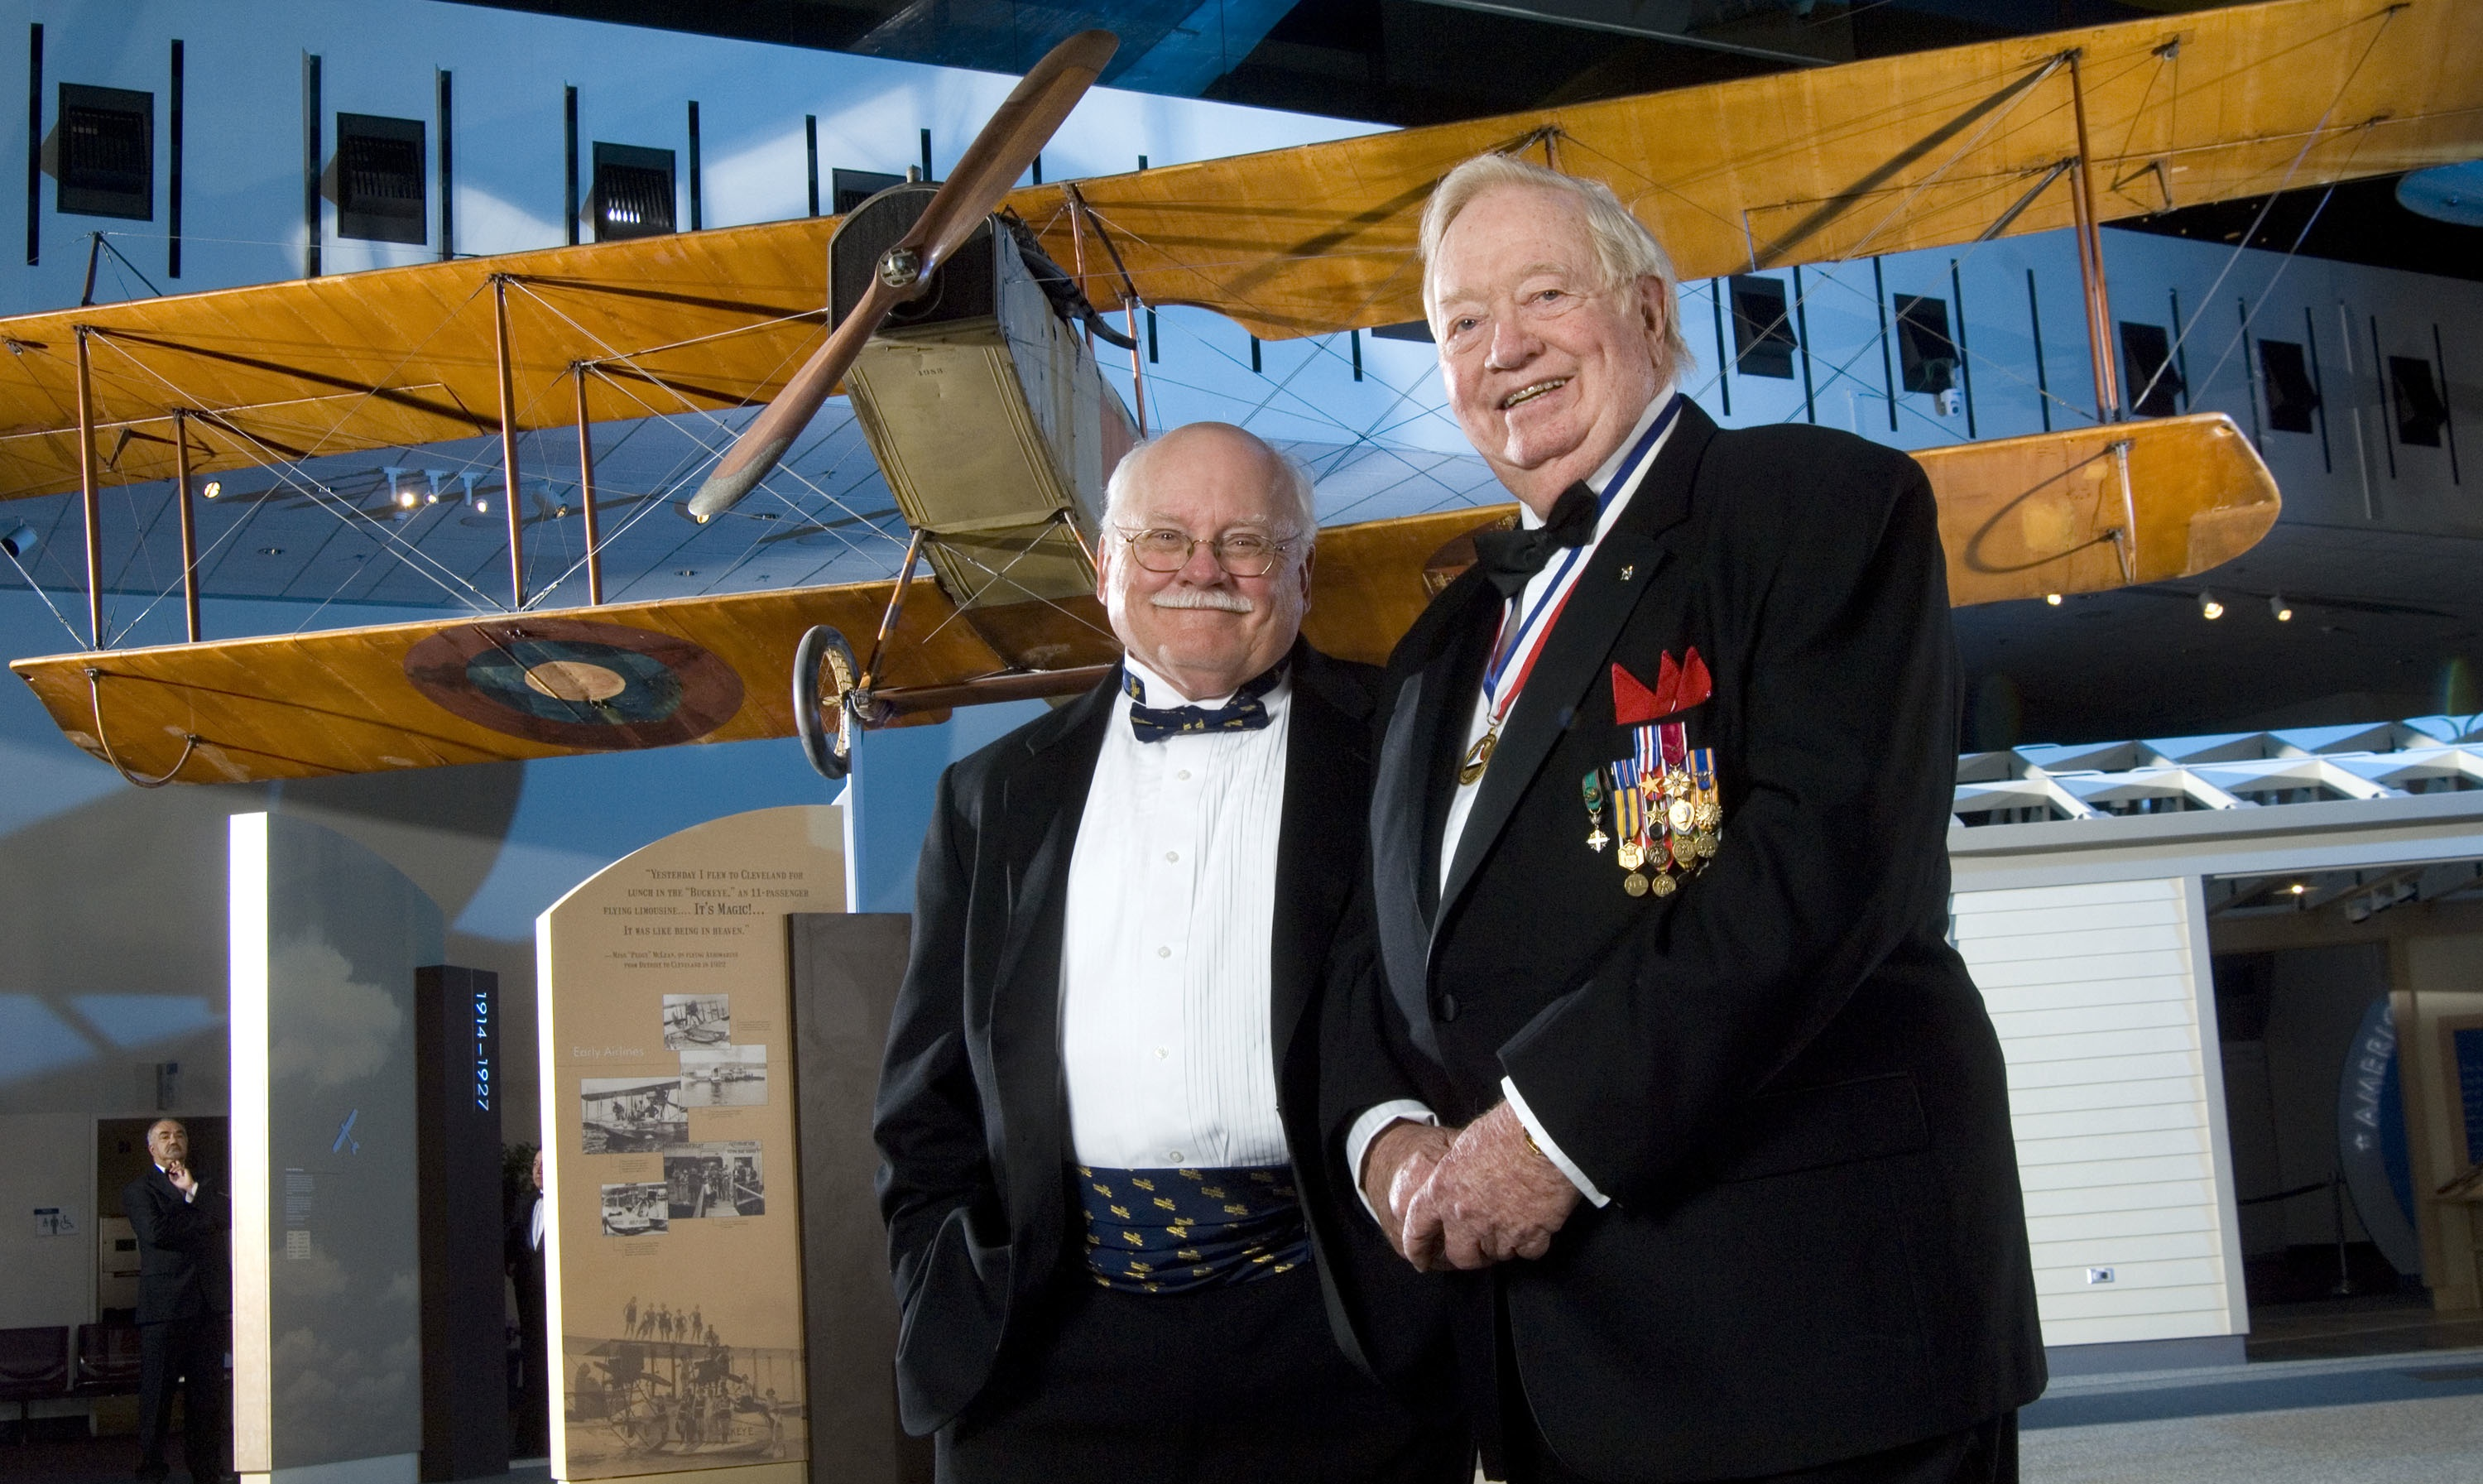 Joseph Kittinger poses with Tom Crouch